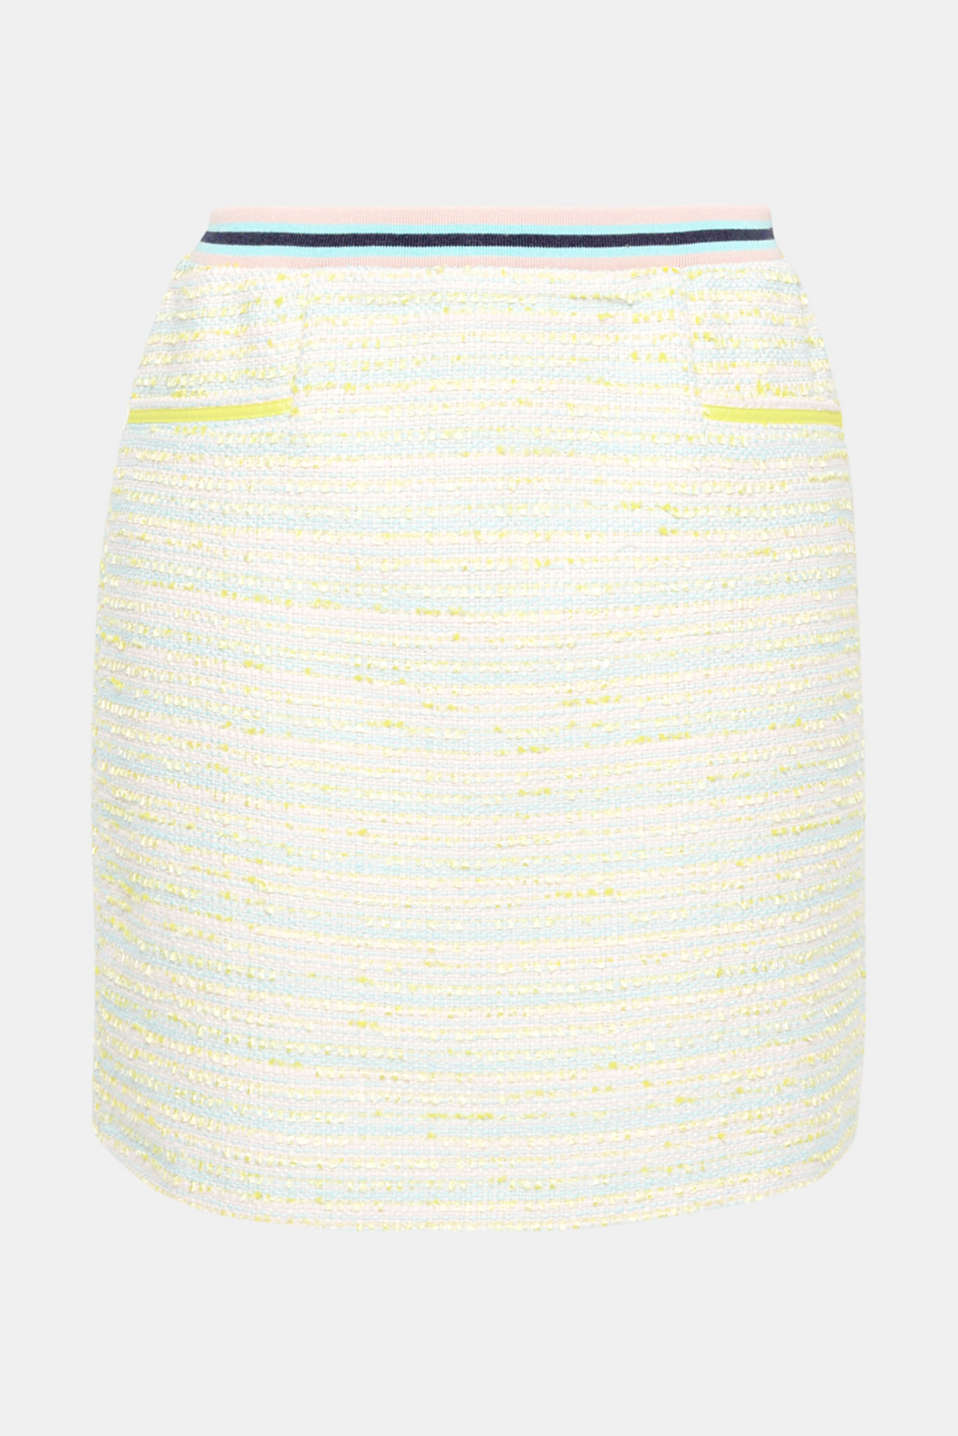 Chic and sporty: this short skirt made of lightweight summer bouclé with neon yellow accents has an innovative, trendy look thanks to the striped ribbed waistband!